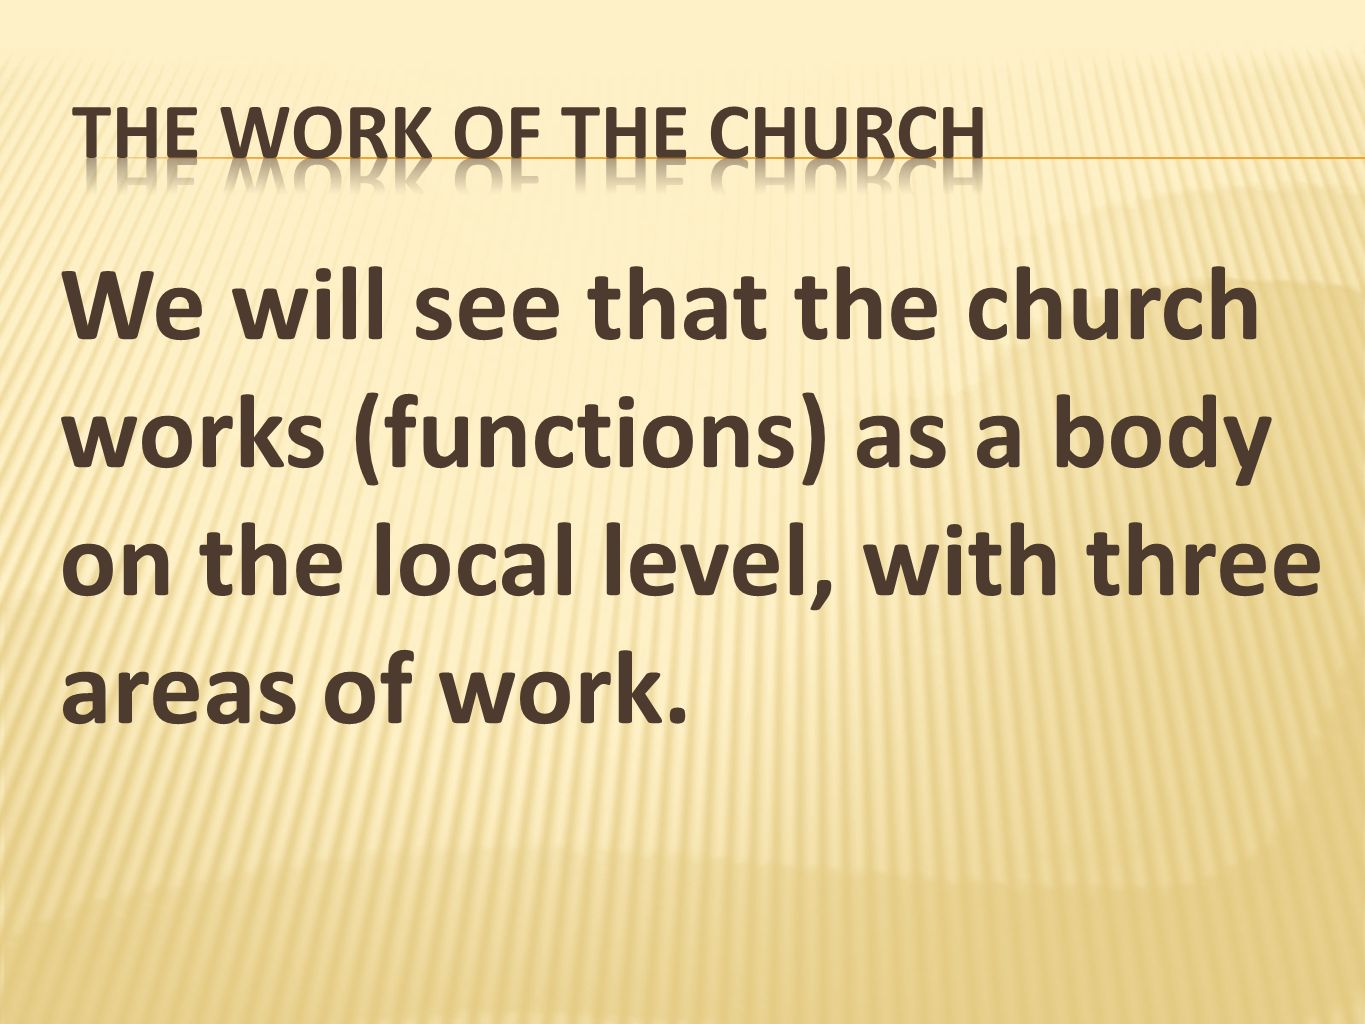 The Work Of The Church We will see that the church works (functions) as a body on the local level, with three areas of work.